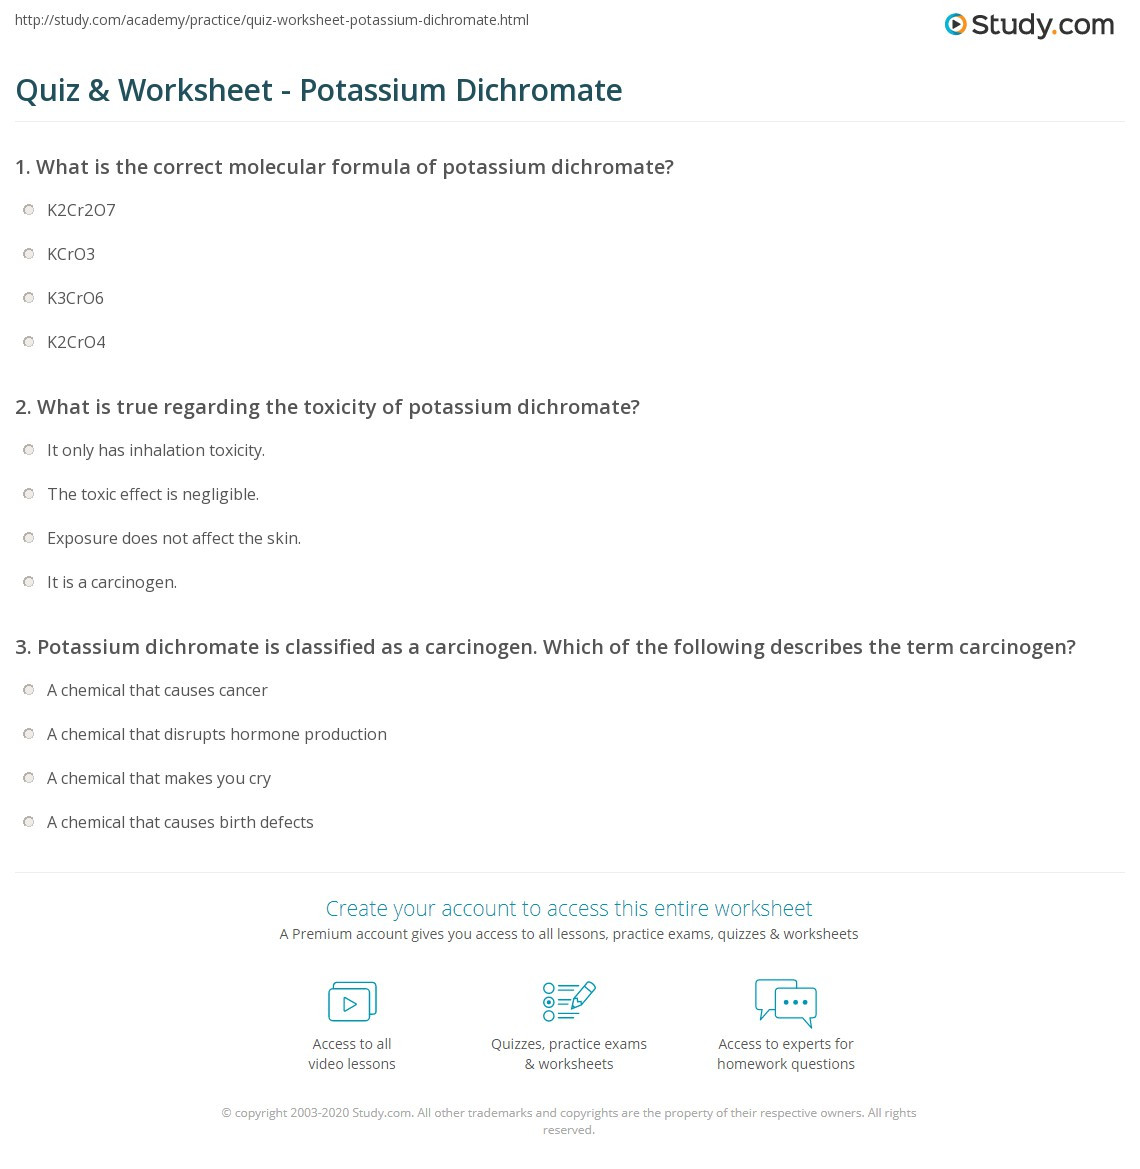 Buffer solutions Worksheets Gallery Of Potassium Worksheet